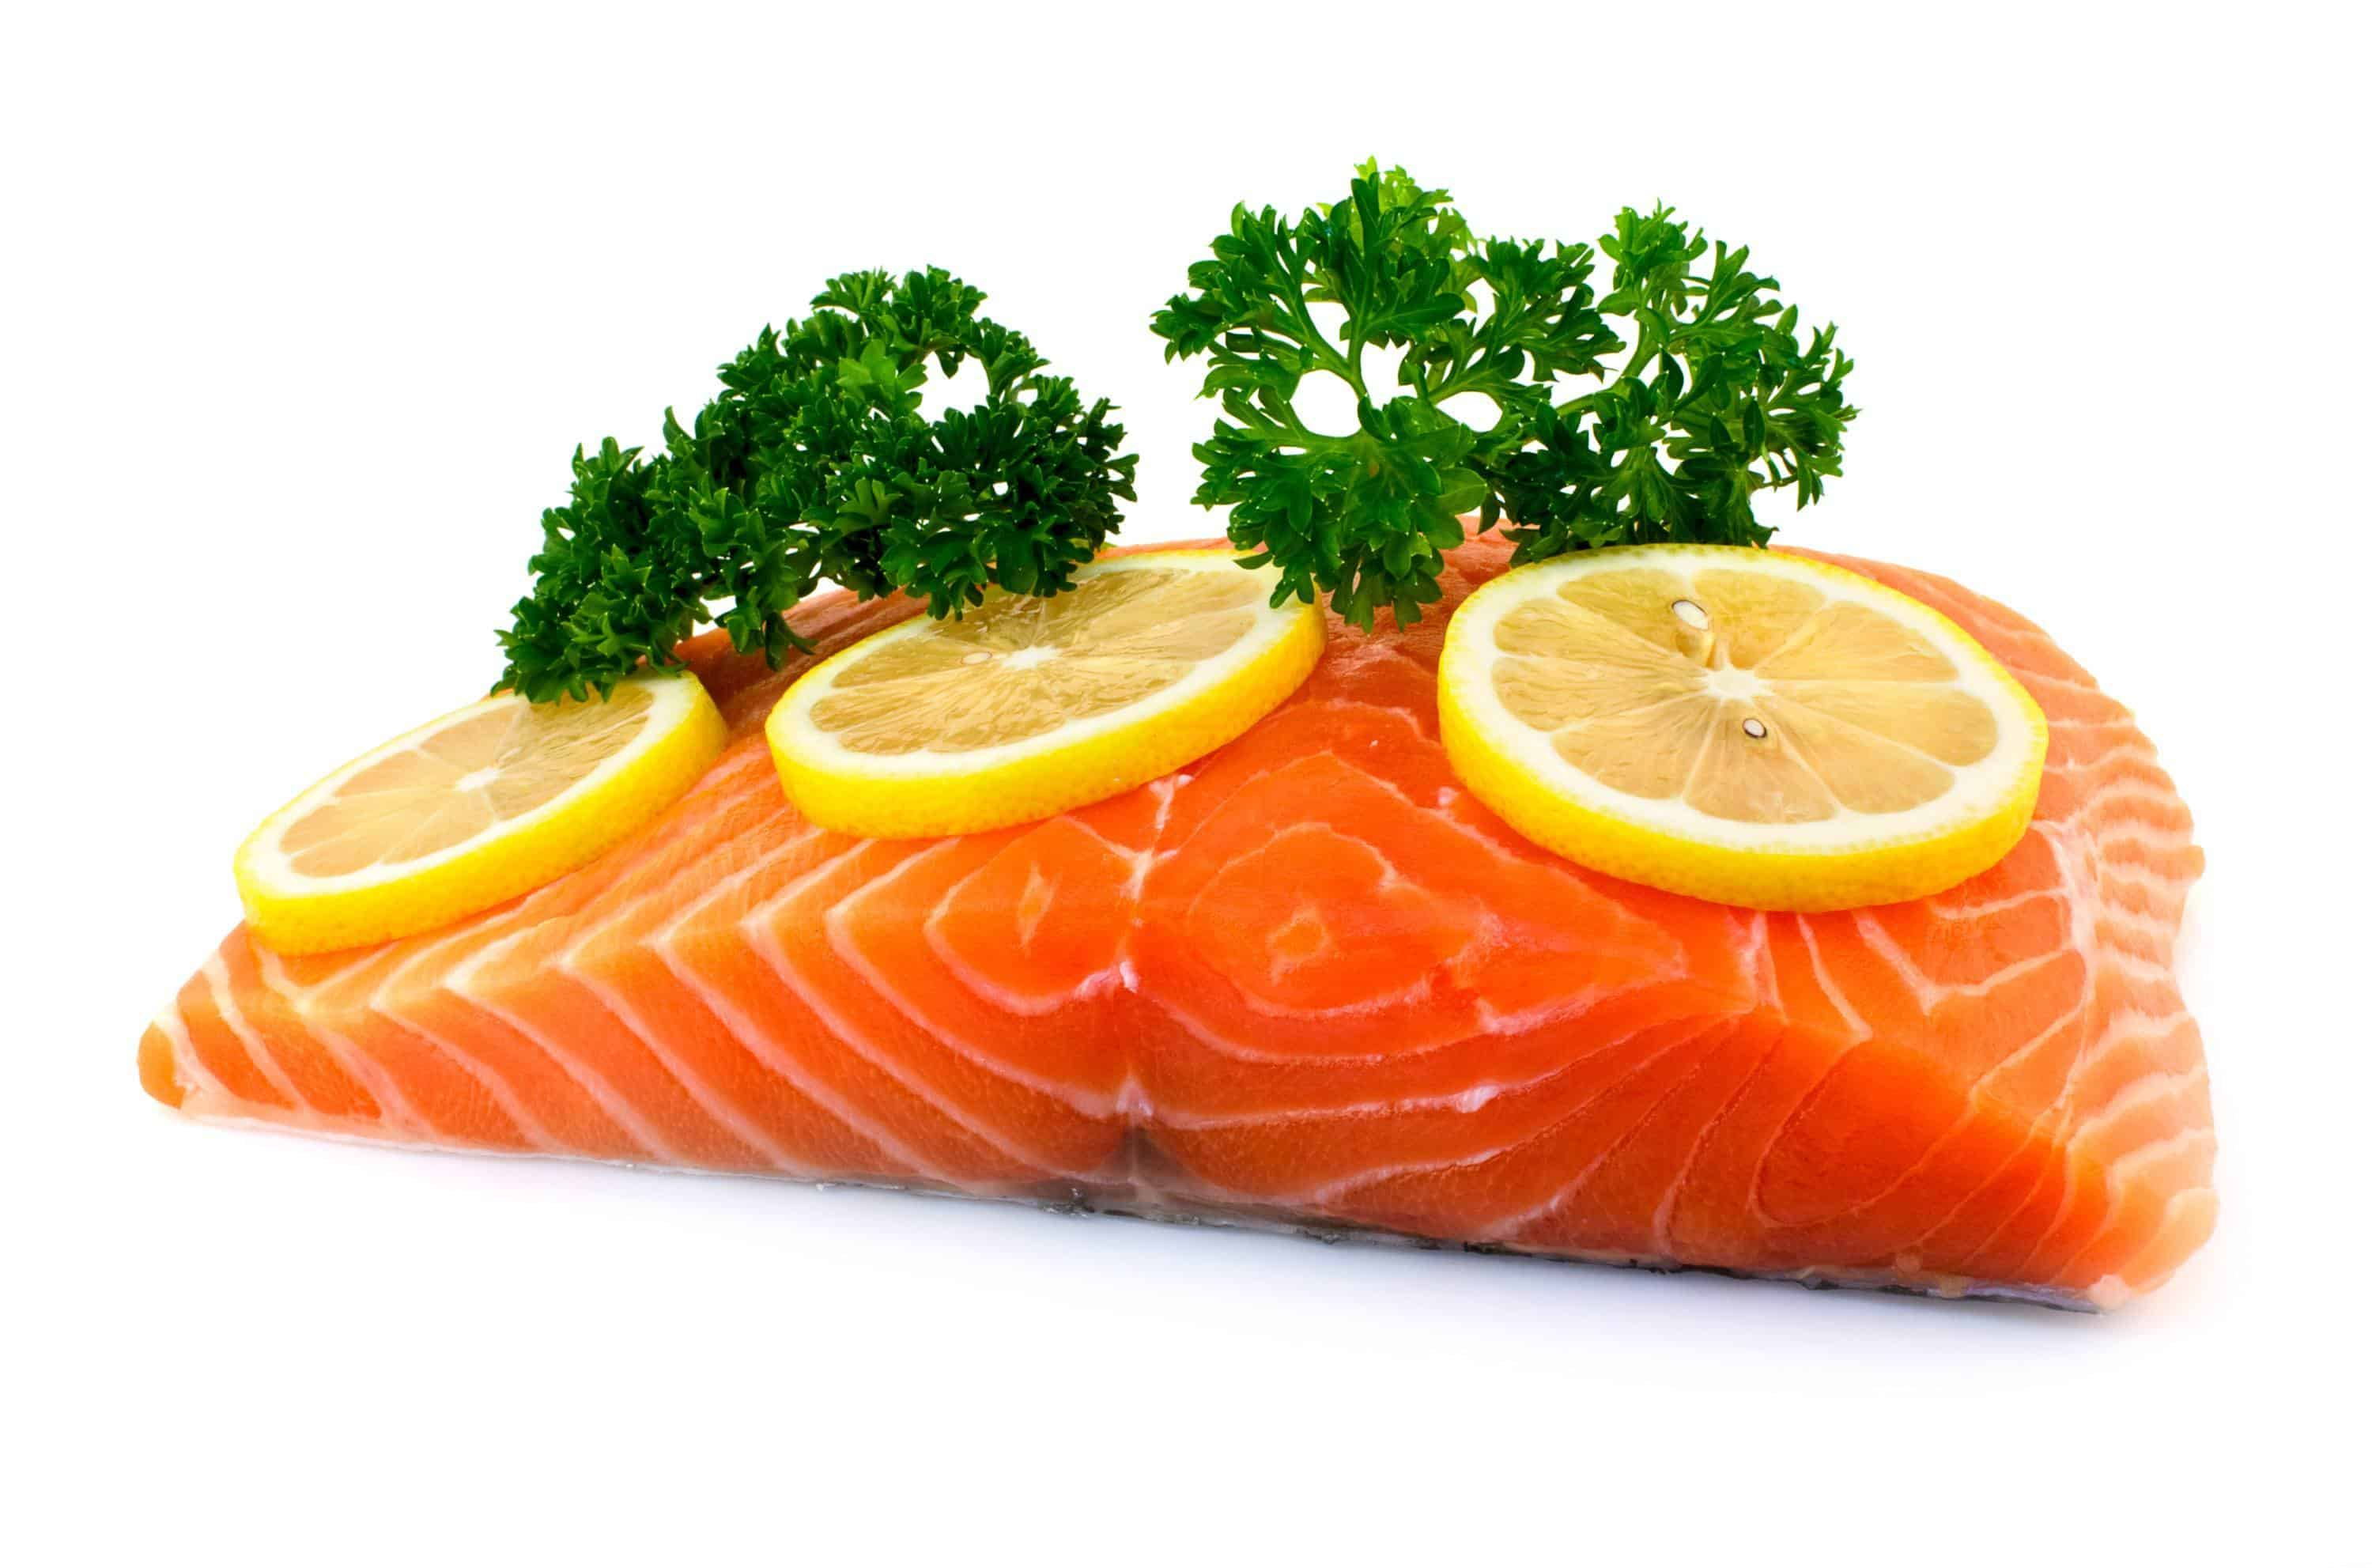 Raw salmon fillet with parsley and lemon on white background